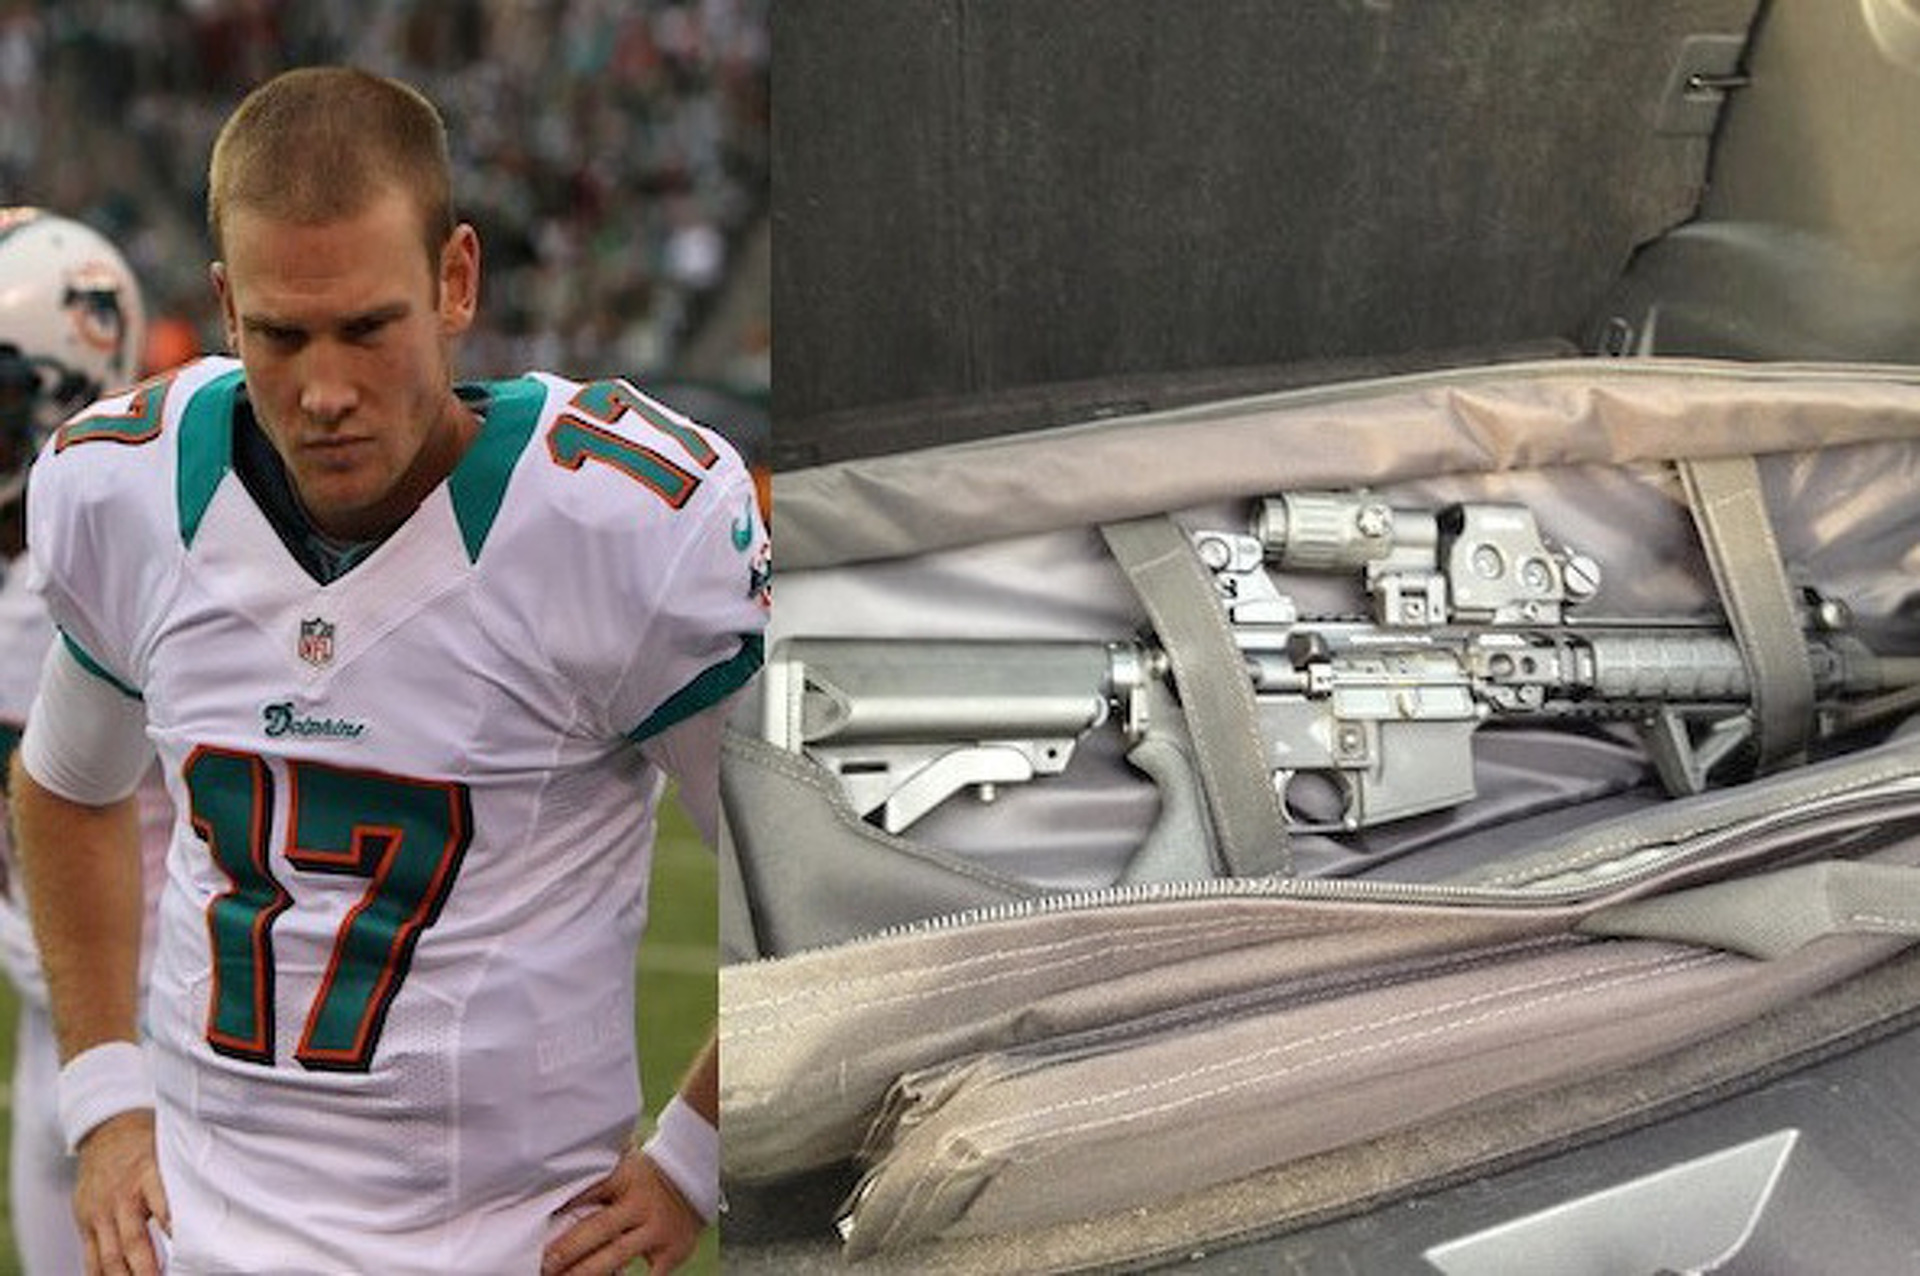 Ryan Tannehill Left an AR-15 Rifle in his Rental Car